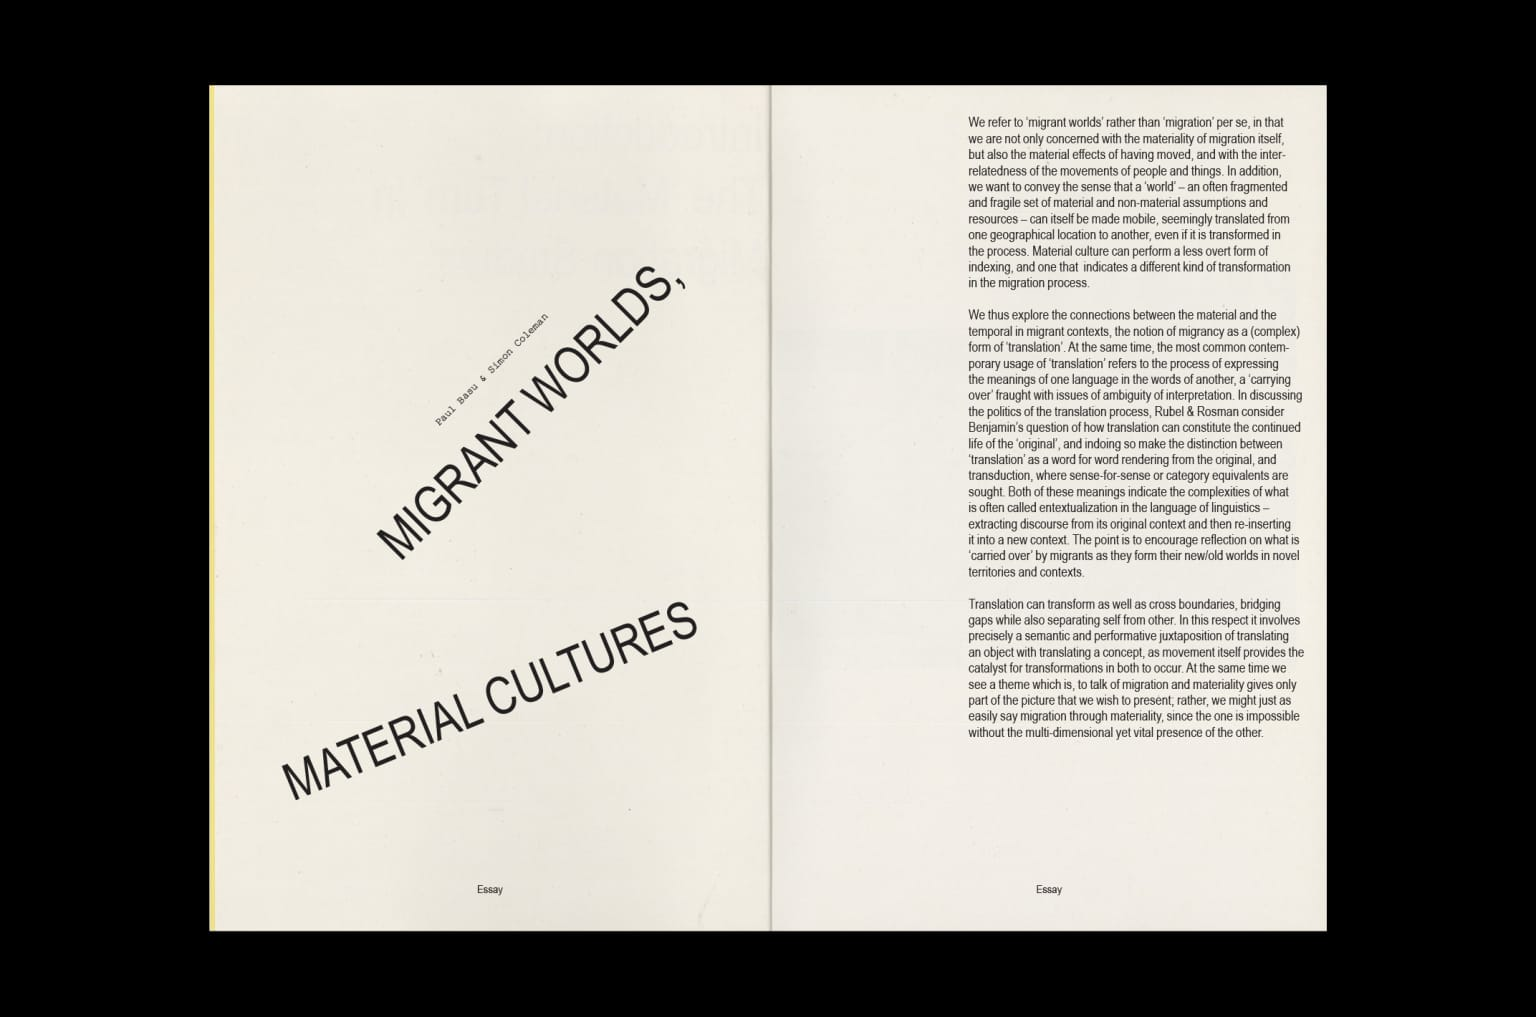 The Intersections of Migration and Material Culture